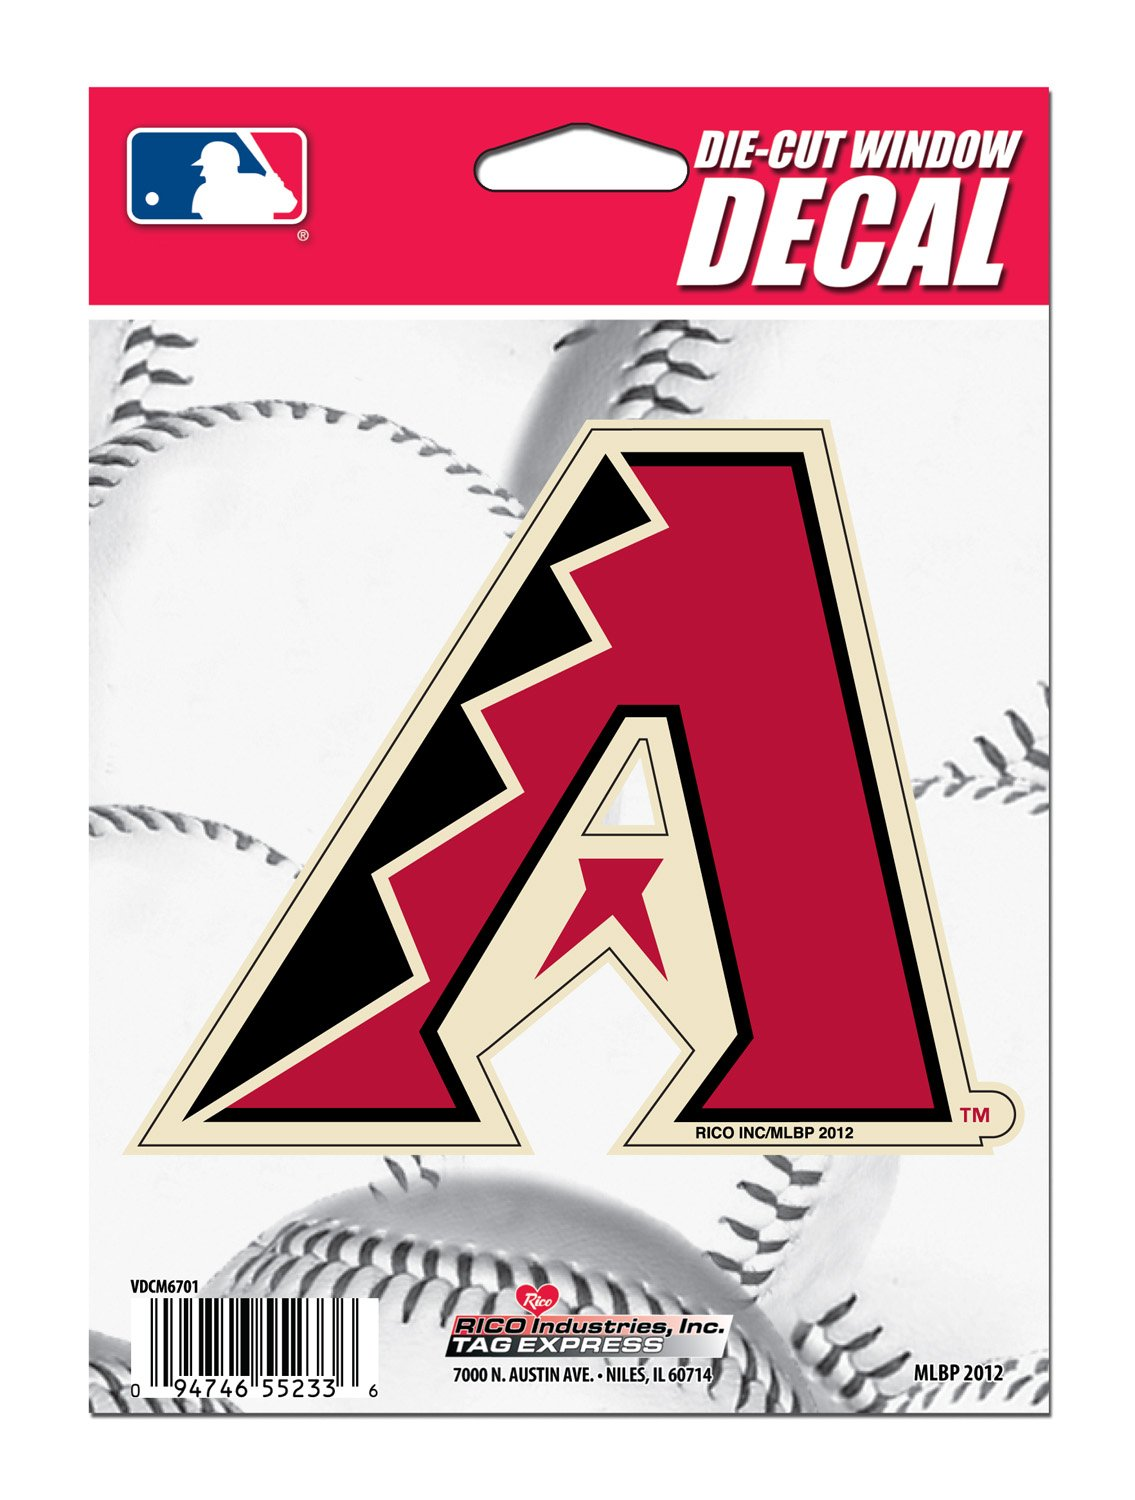 Amazoncom MLB Arizona Diamondbacks DieCut Window Decal - Die cut window decals